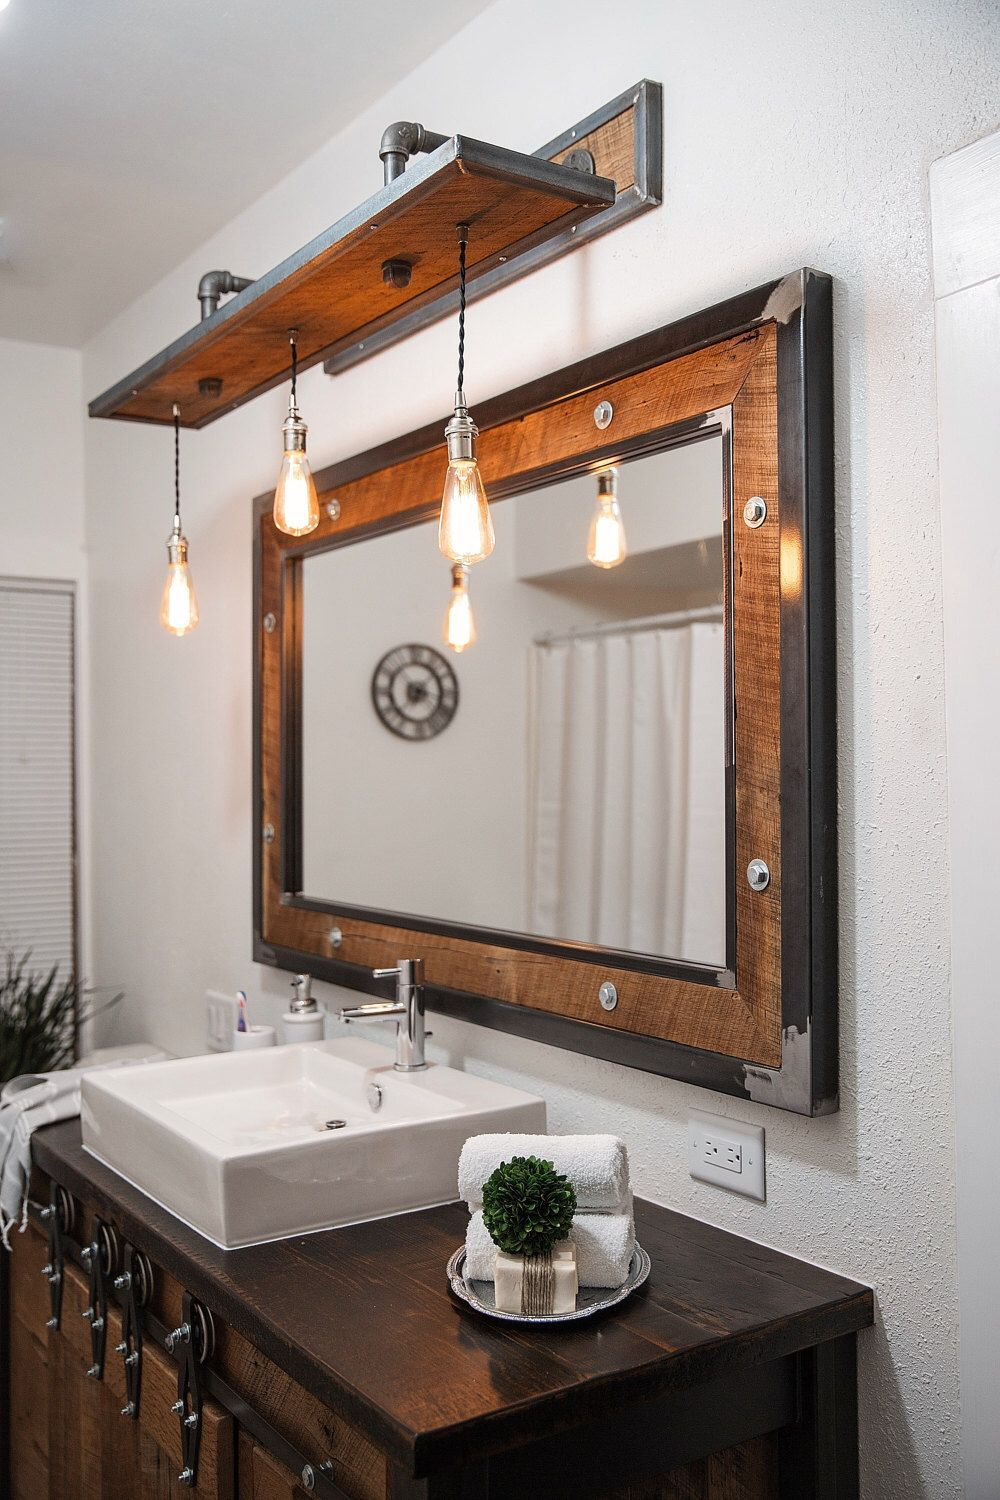 20 Beautiful Bathroom Mirror Ideas To Shake Up Your Morning Lipstick Trendy Pictures Rustic Bathroom Vanities Rustic Bathrooms Rustic Bathroom Lighting